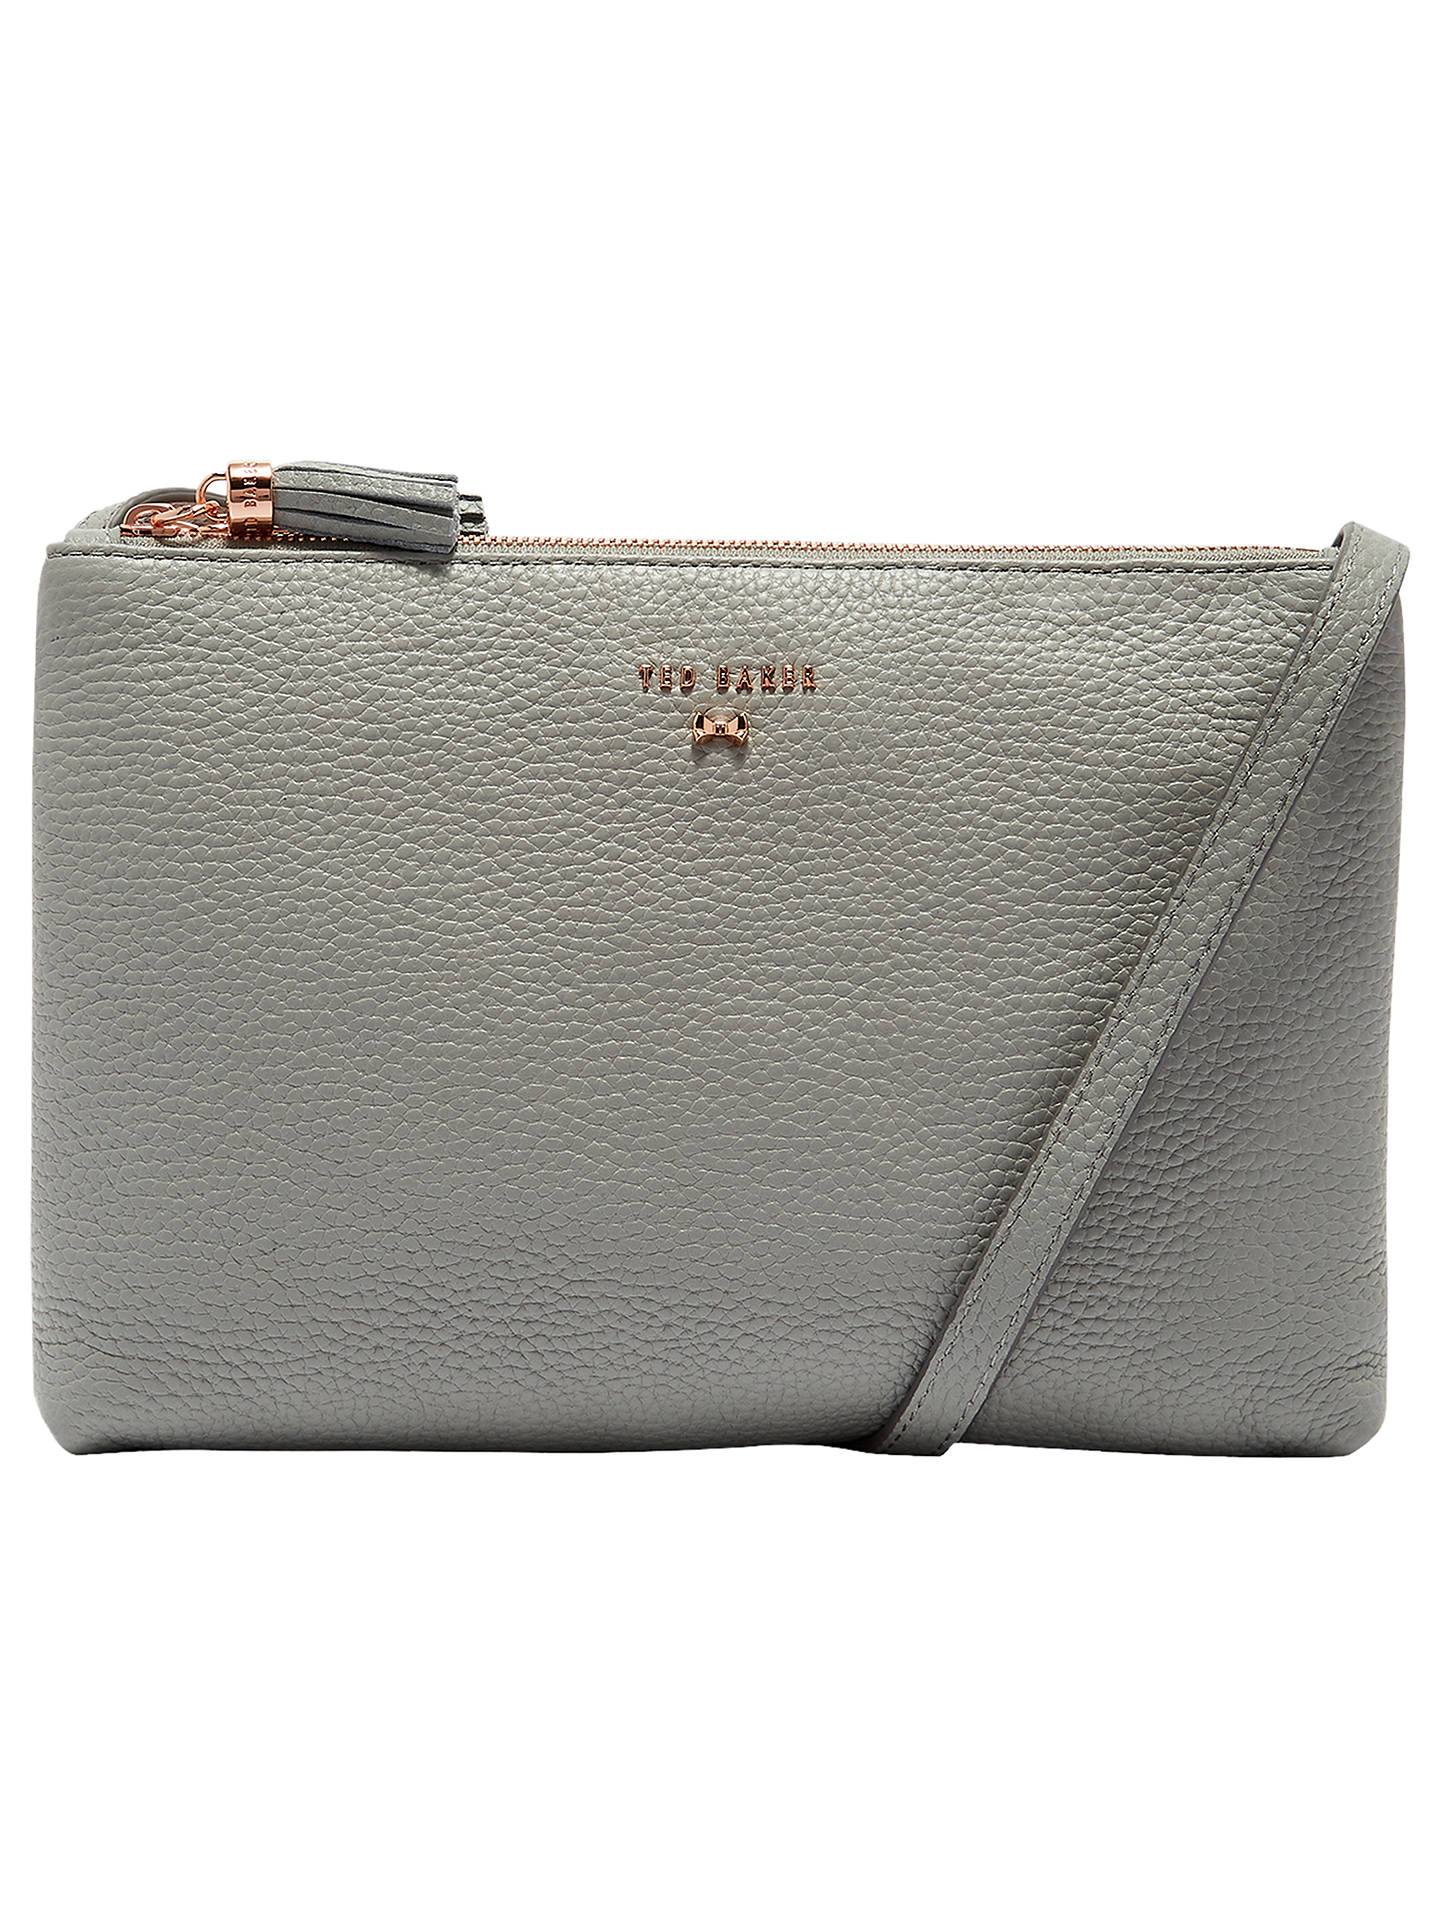 98b6b954f62a Ted Baker Suzette Leather Double Zip Cross Body Bag at John Lewis ...